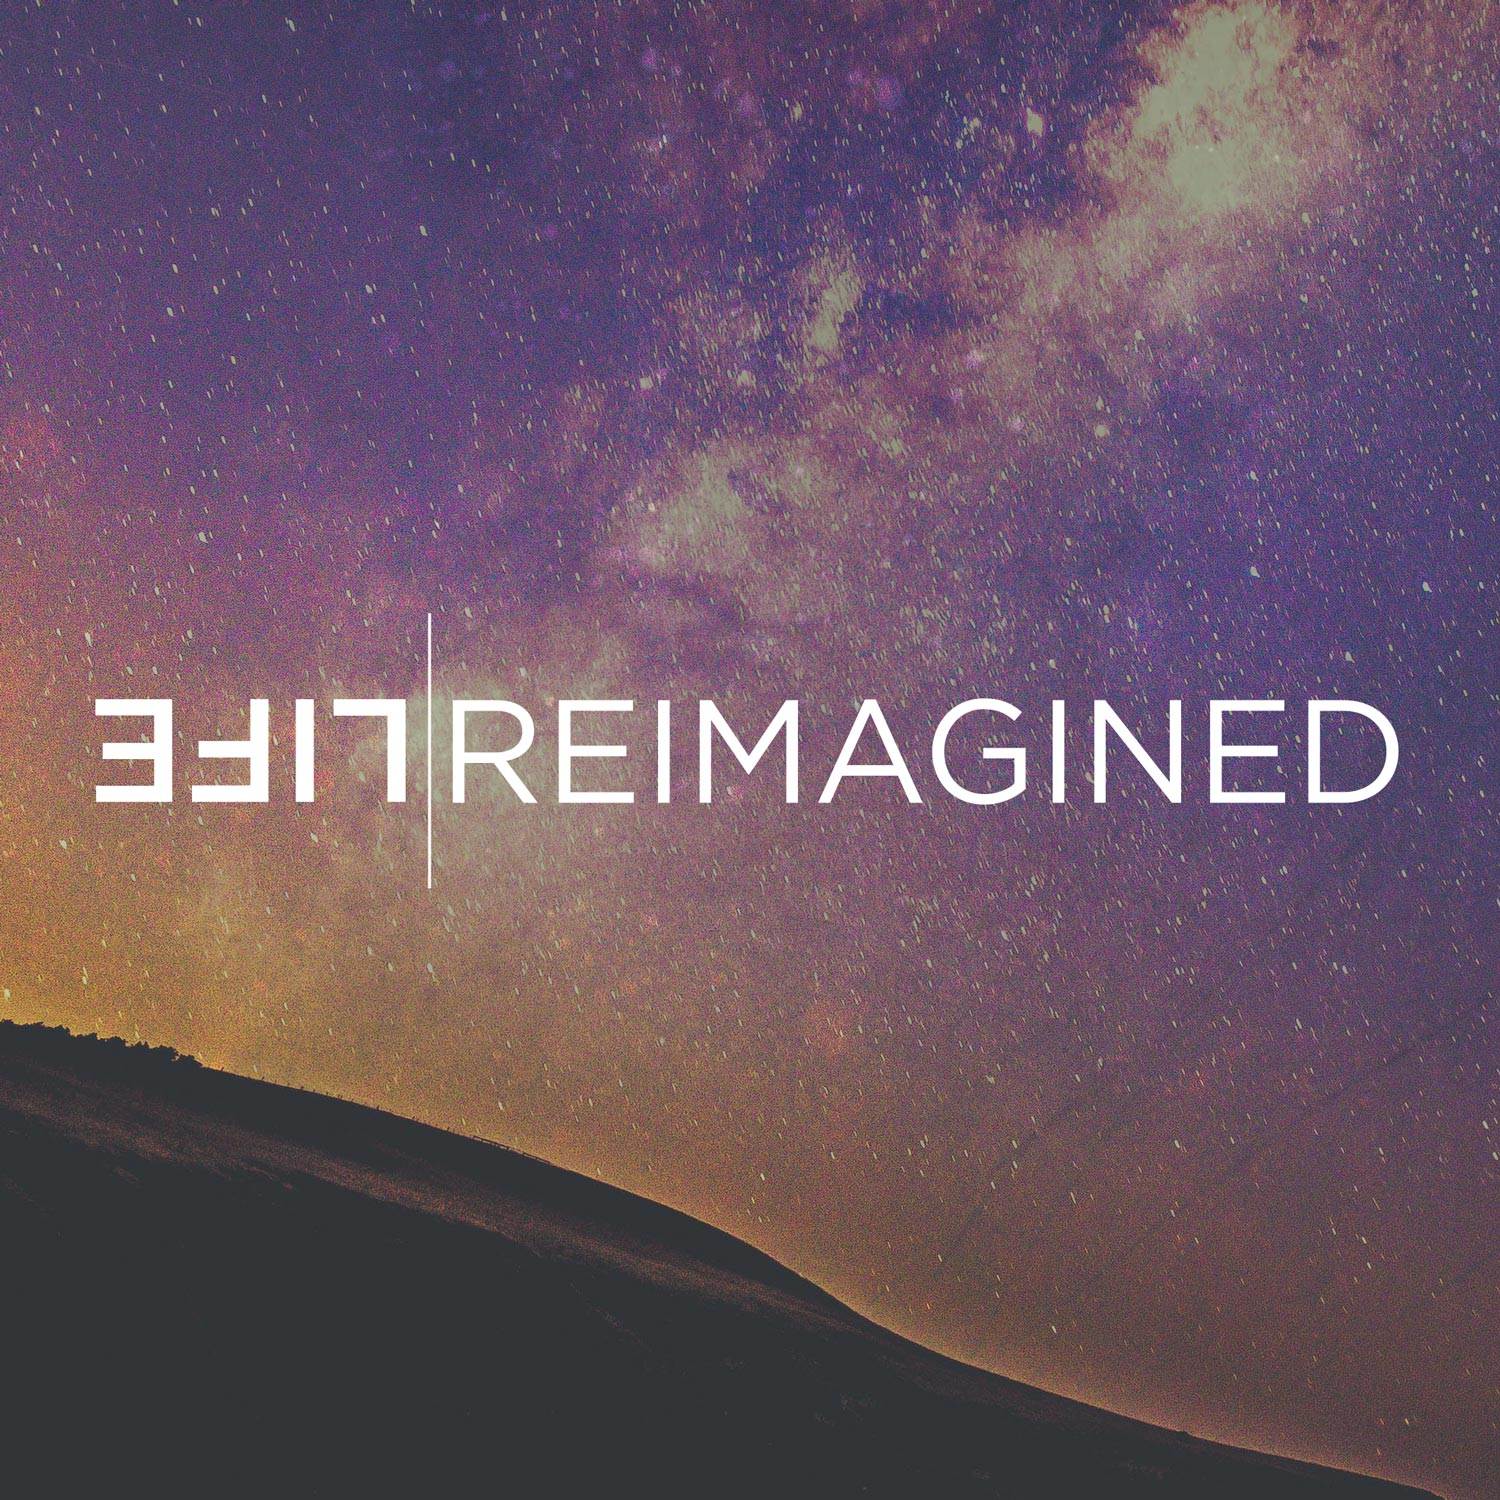 Life Reimagined Series Graphic - Group Resources - Greenville Community Church